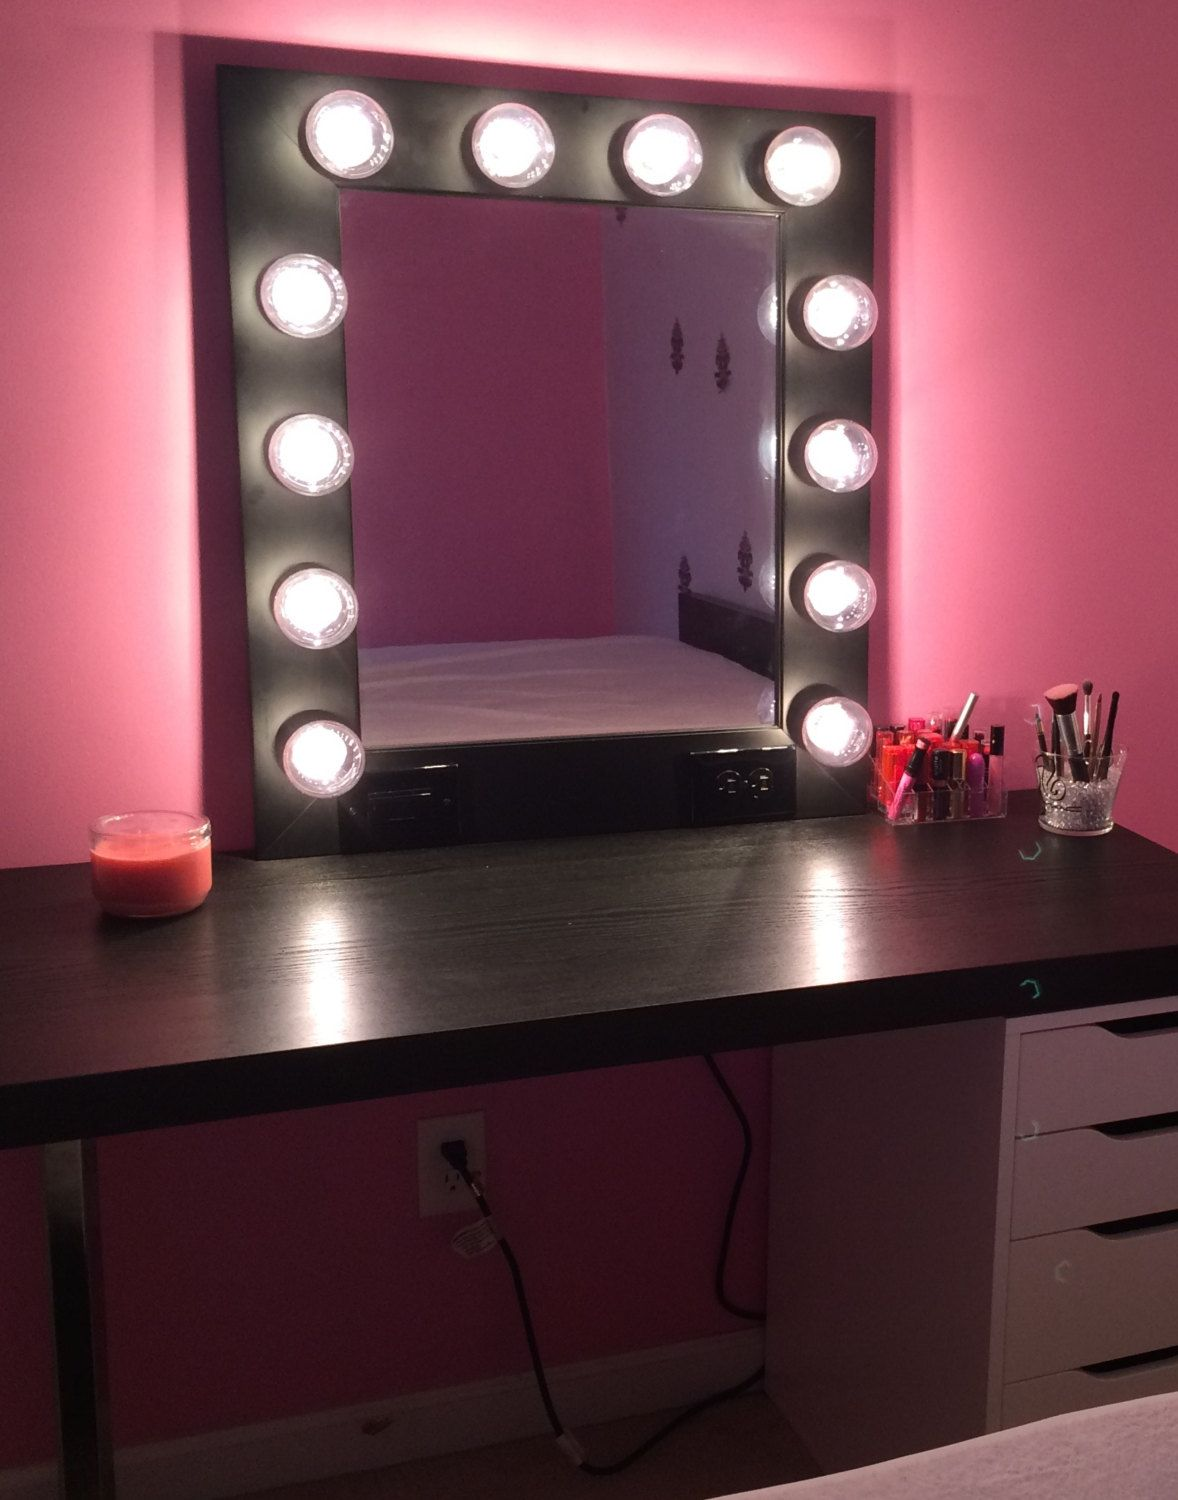 black lighted vanity mirror. vanity makeup mirror with lights- available built in digital led dimmer and power outlet- plug it in, watch light up! by customvanity on etsy black lighted pinterest